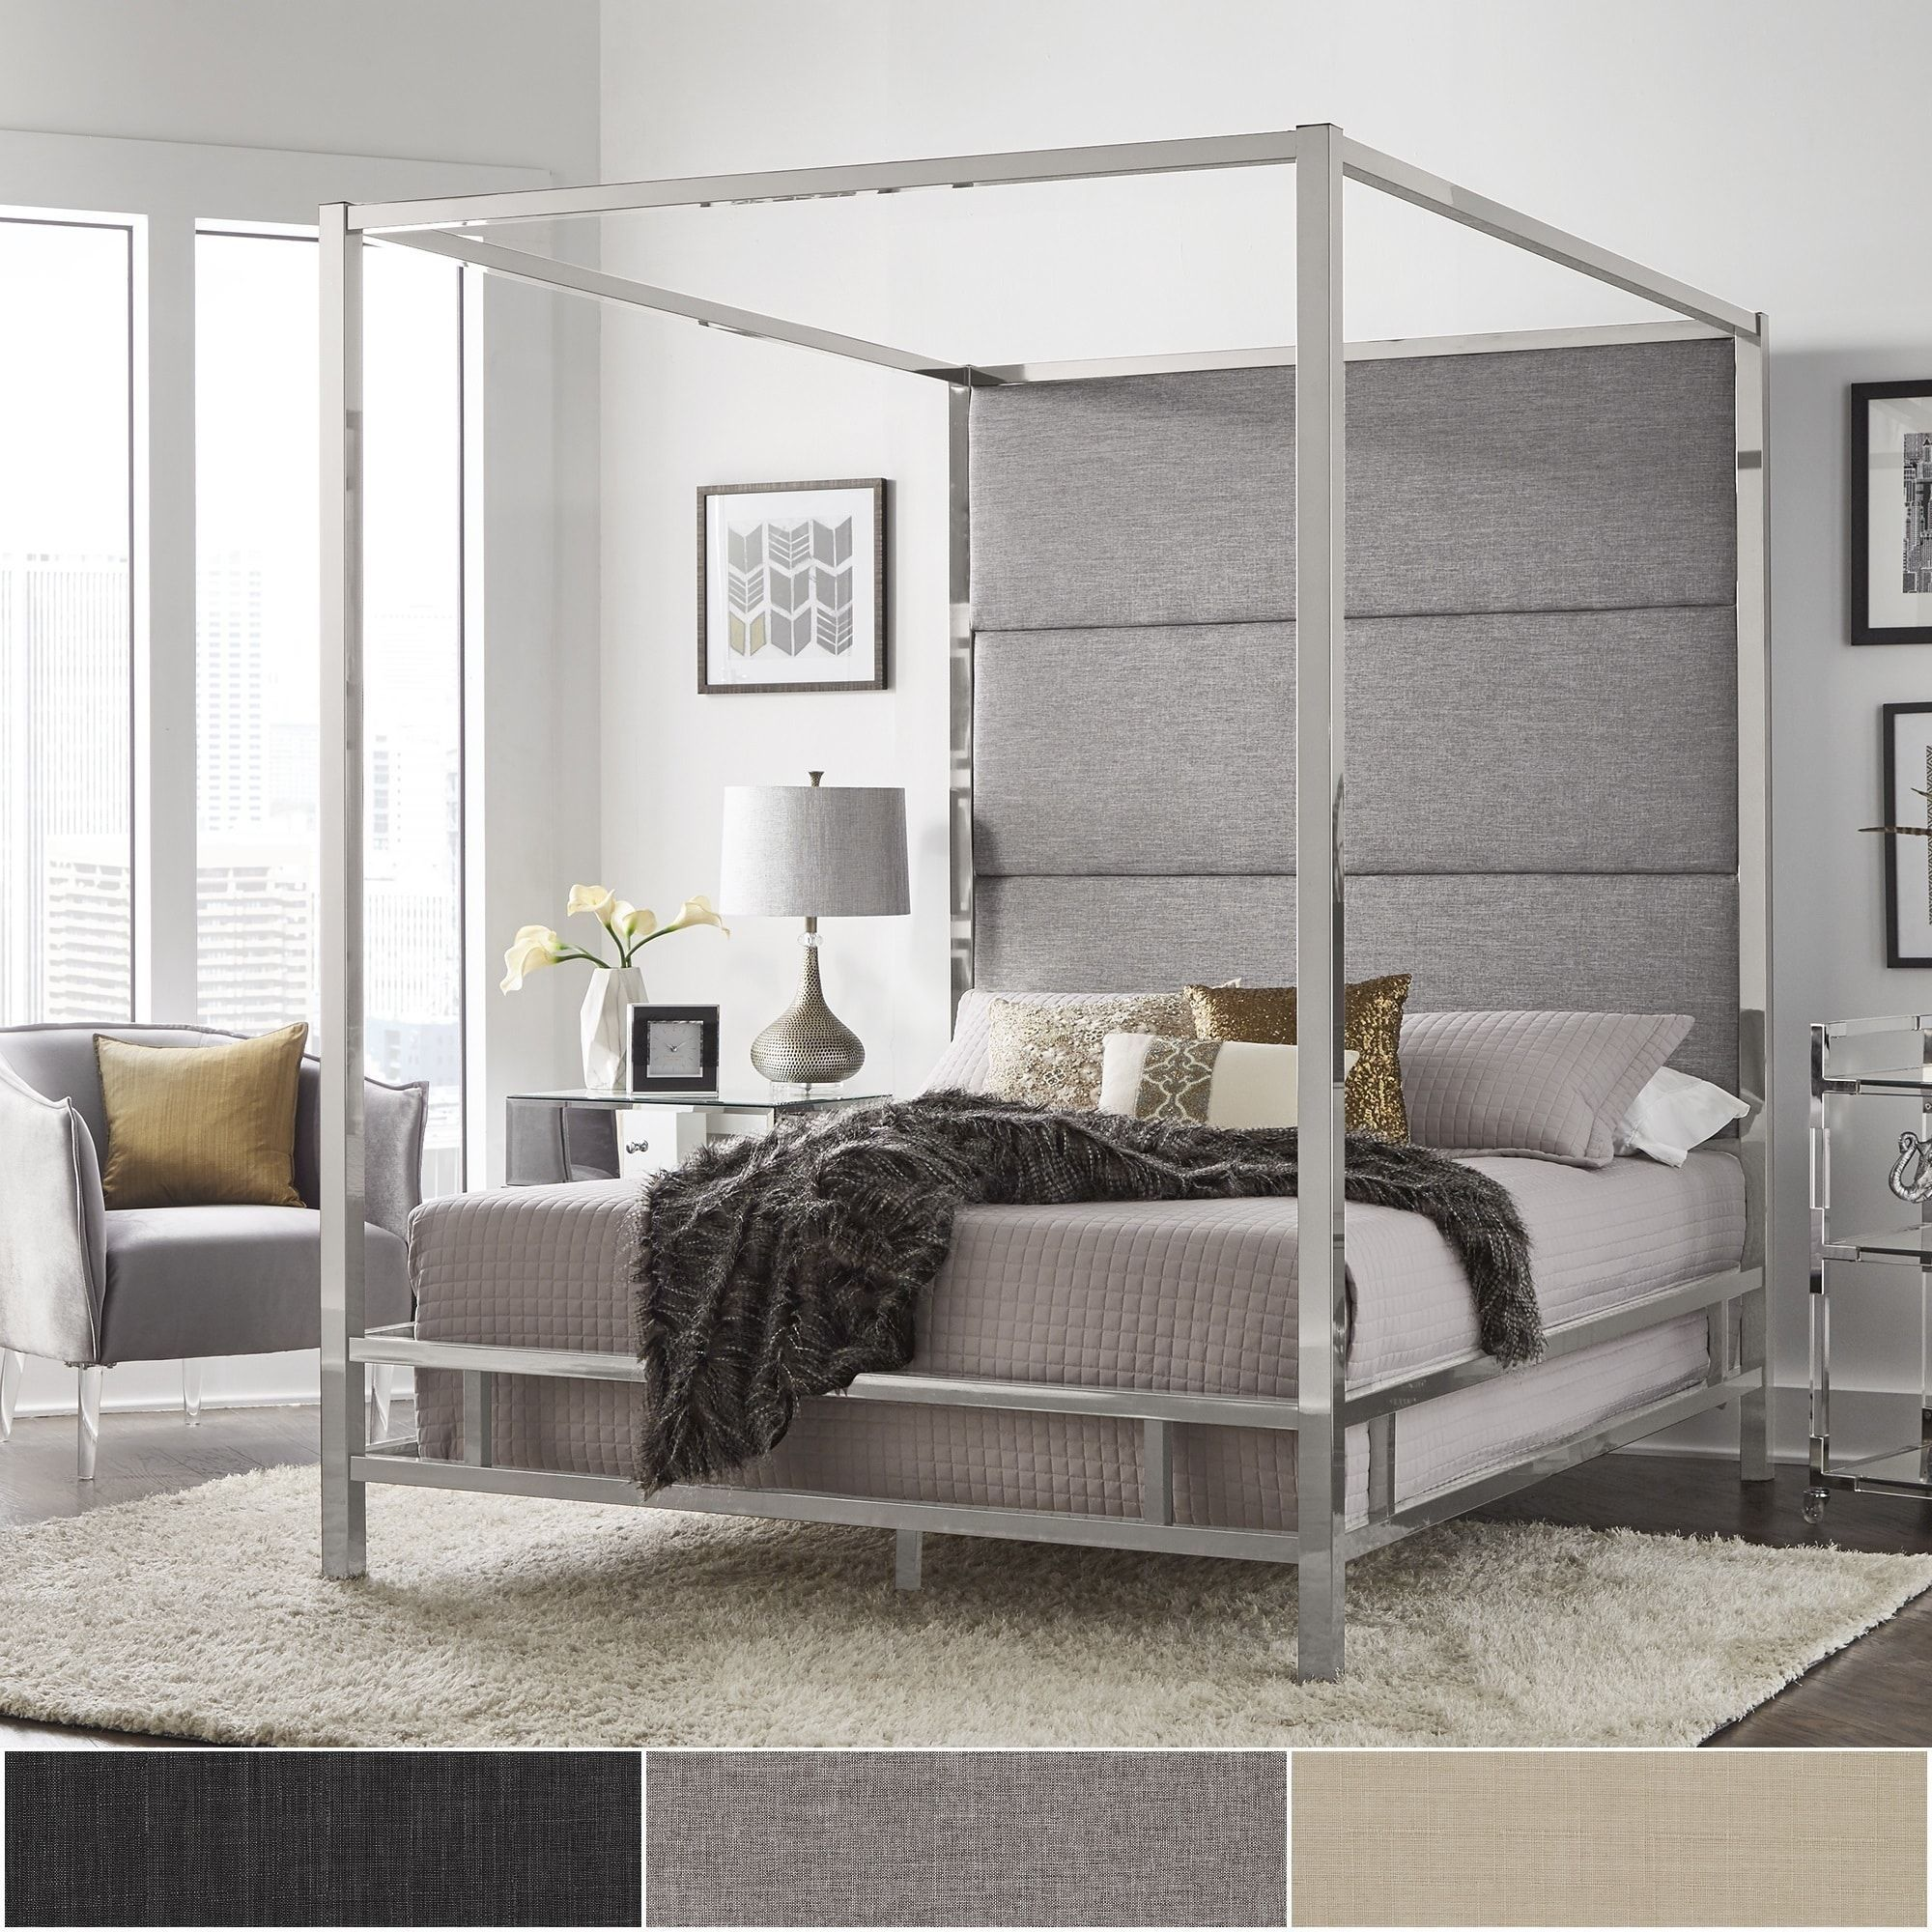 bed deluxe fb com shelter in upholstered up with grey dark close sofamania platform oslo headboard frame gr classic linen products